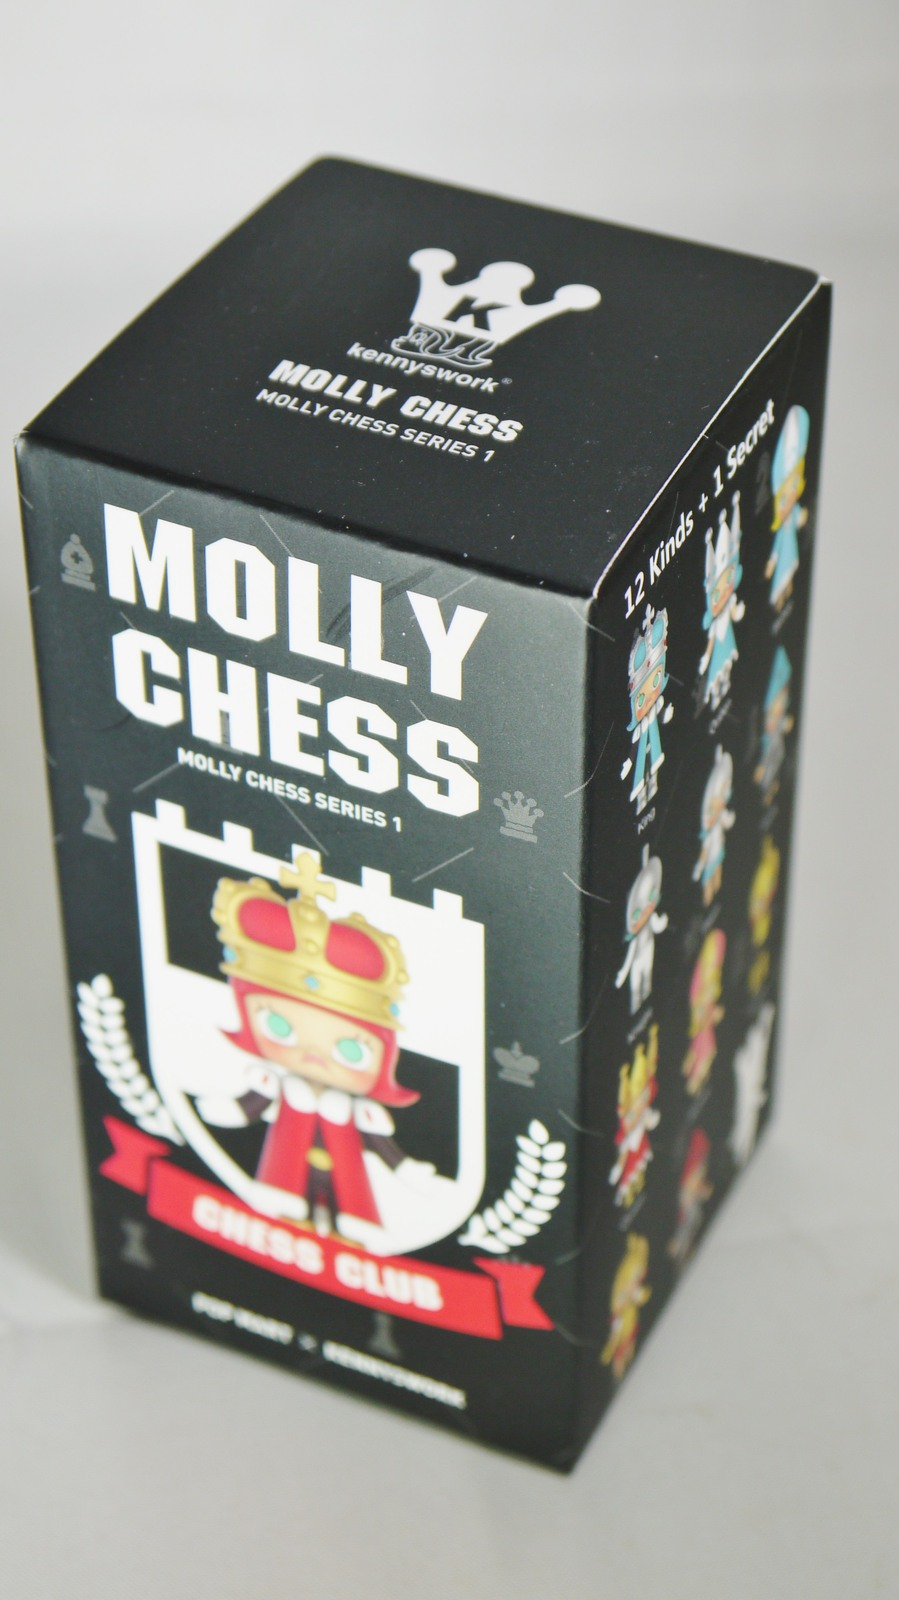 POP MART Kennyswork BLOCK Little Molly Chess Club Chessmate KNIGHT Silver White